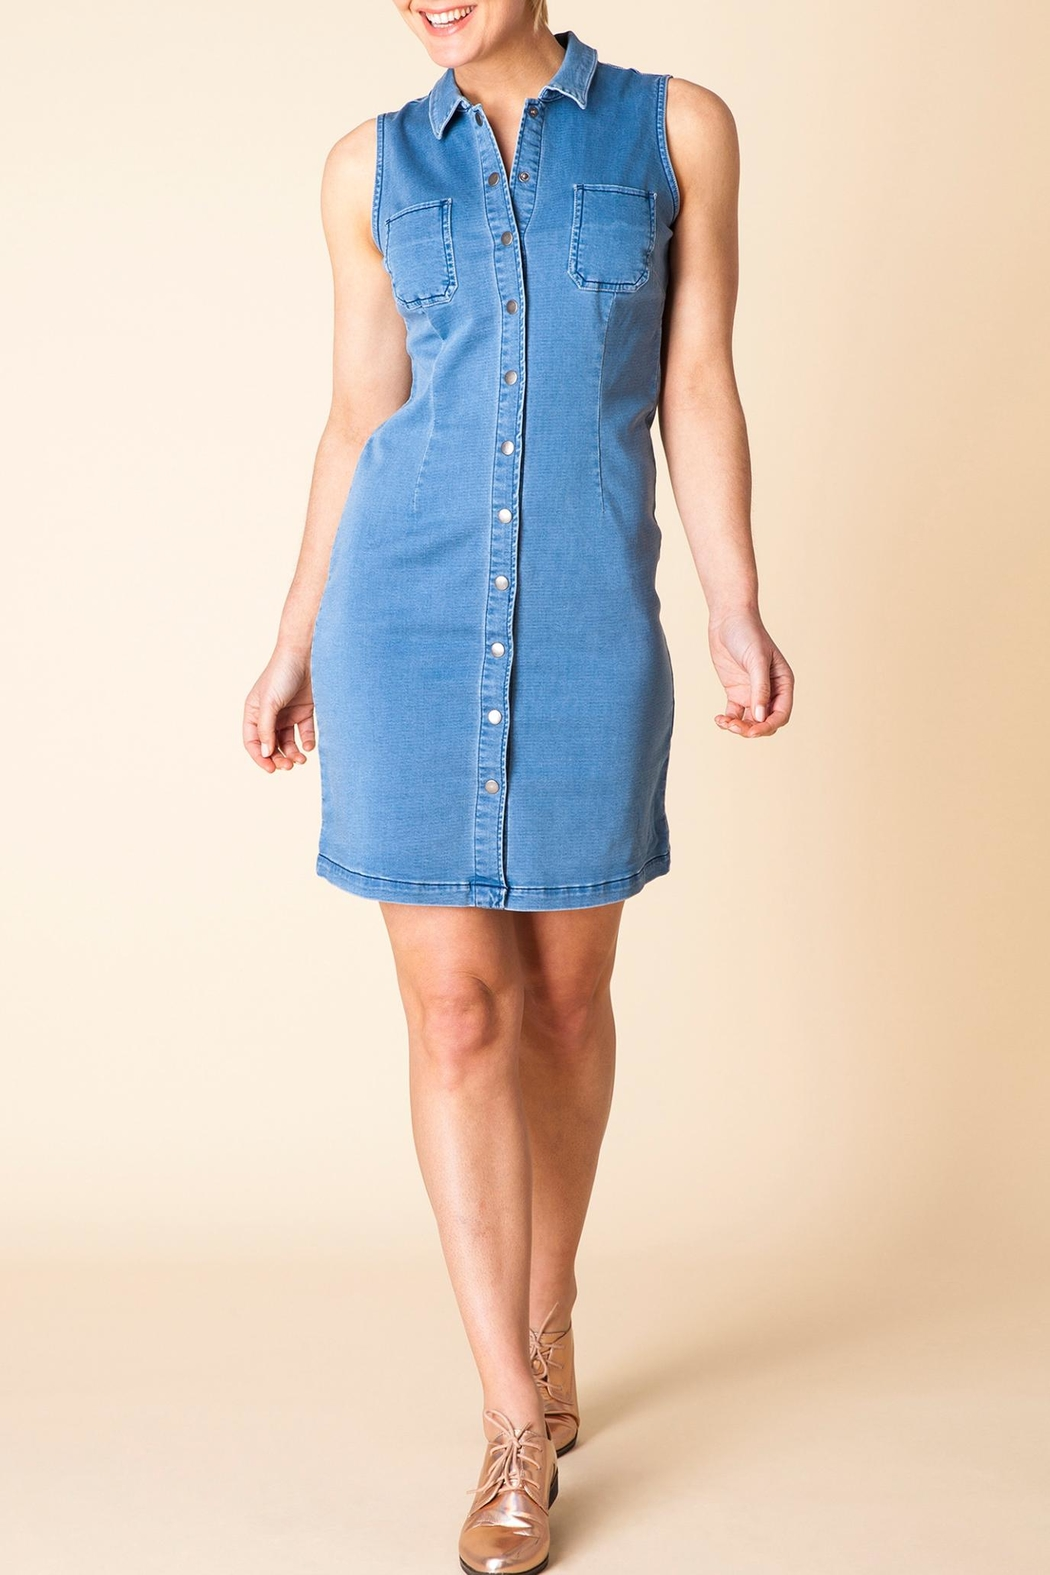 Yest The Denim Dress - Main Image